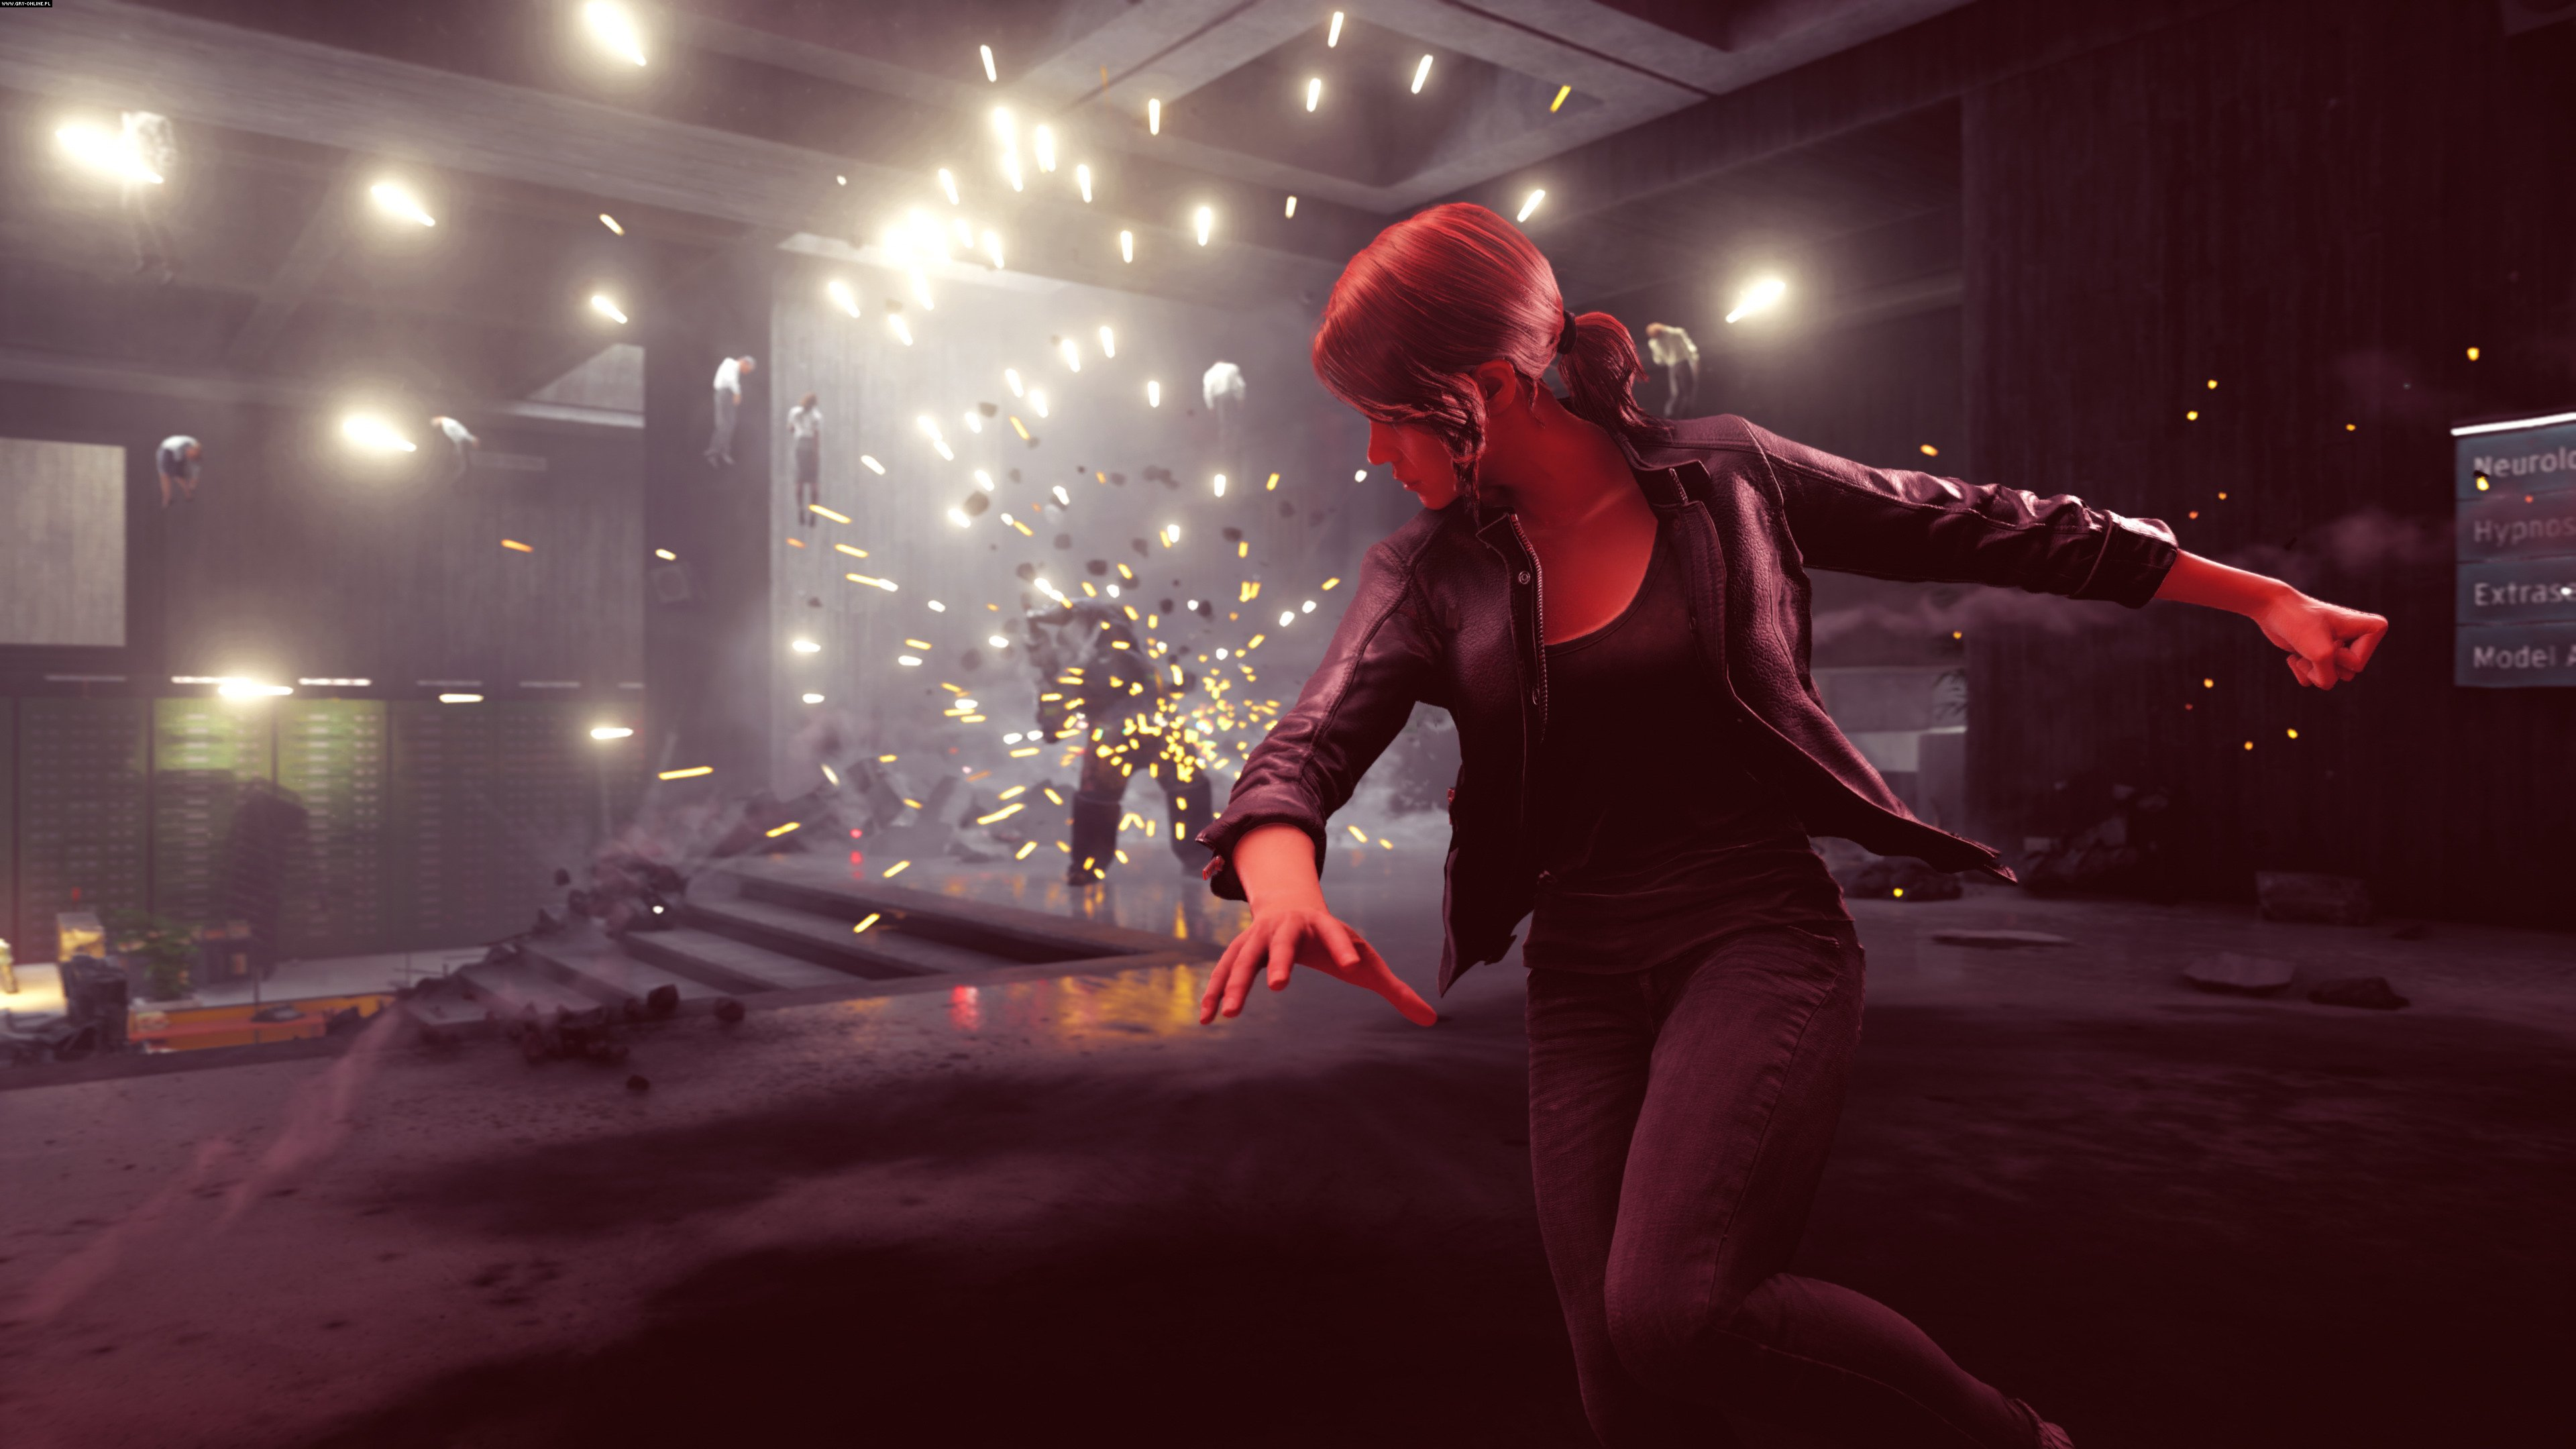 Control PC, PS4, XONE Games Image 4/34, Remedy Entertainment, 505 Games